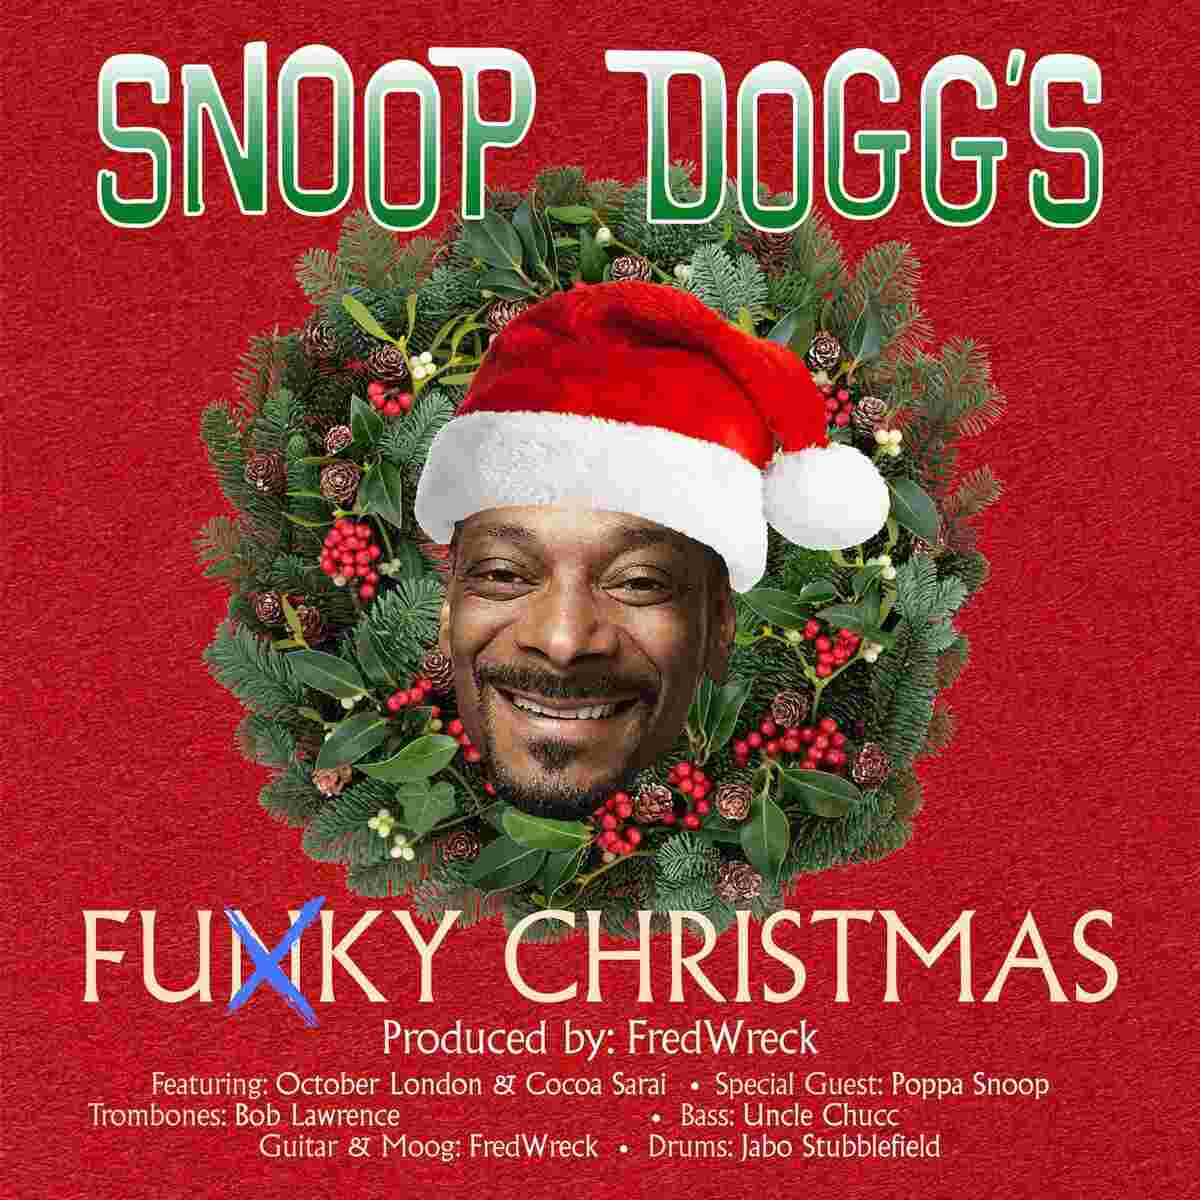 Snoop Dogg - Funky Christmas Ft. October London